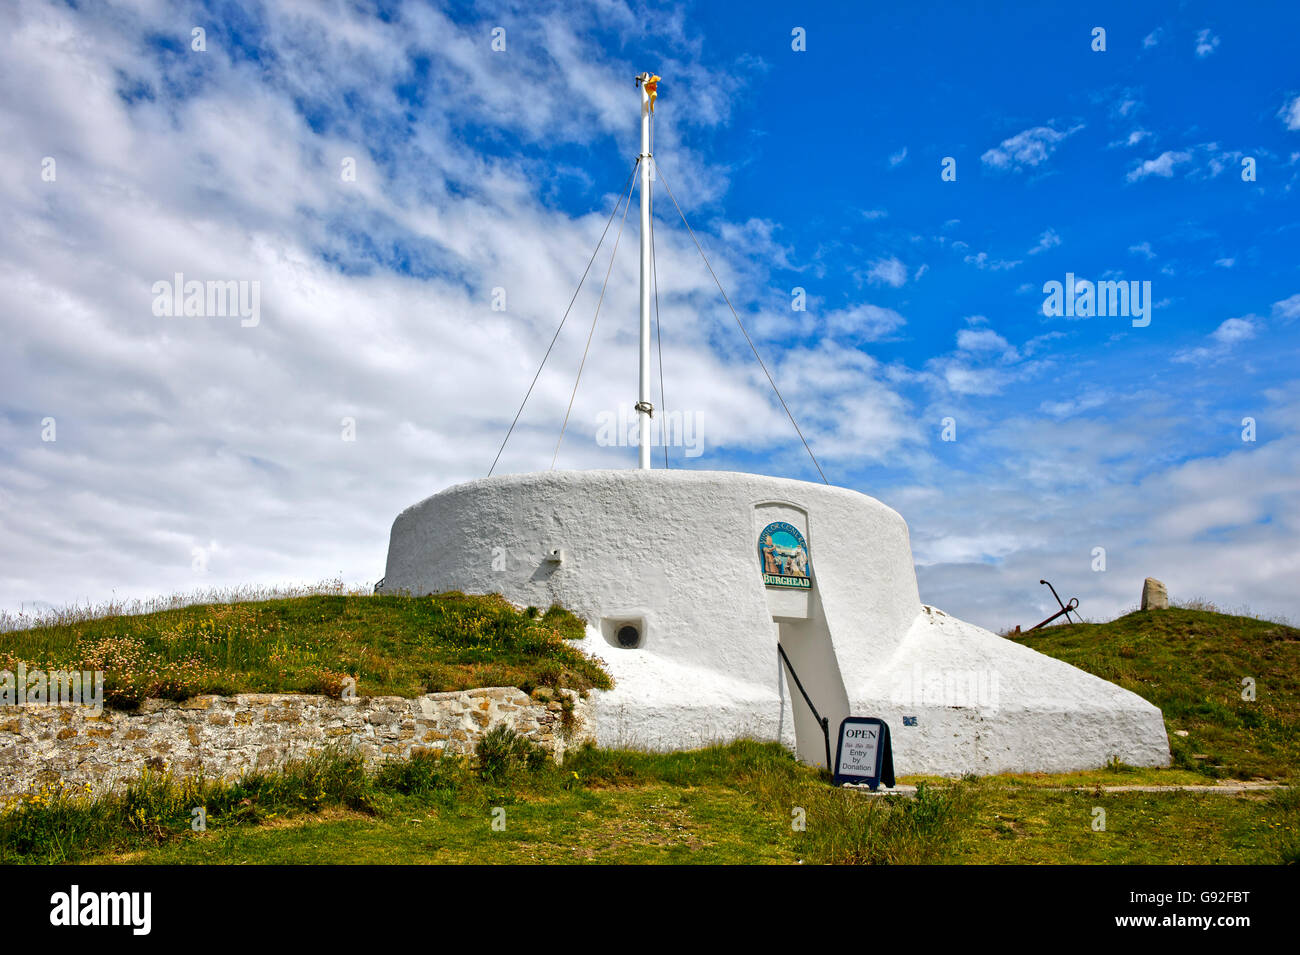 Visitor centre in the former coastguard lookout, Burghead, Moray, Scotland, Great Britain - Stock Image